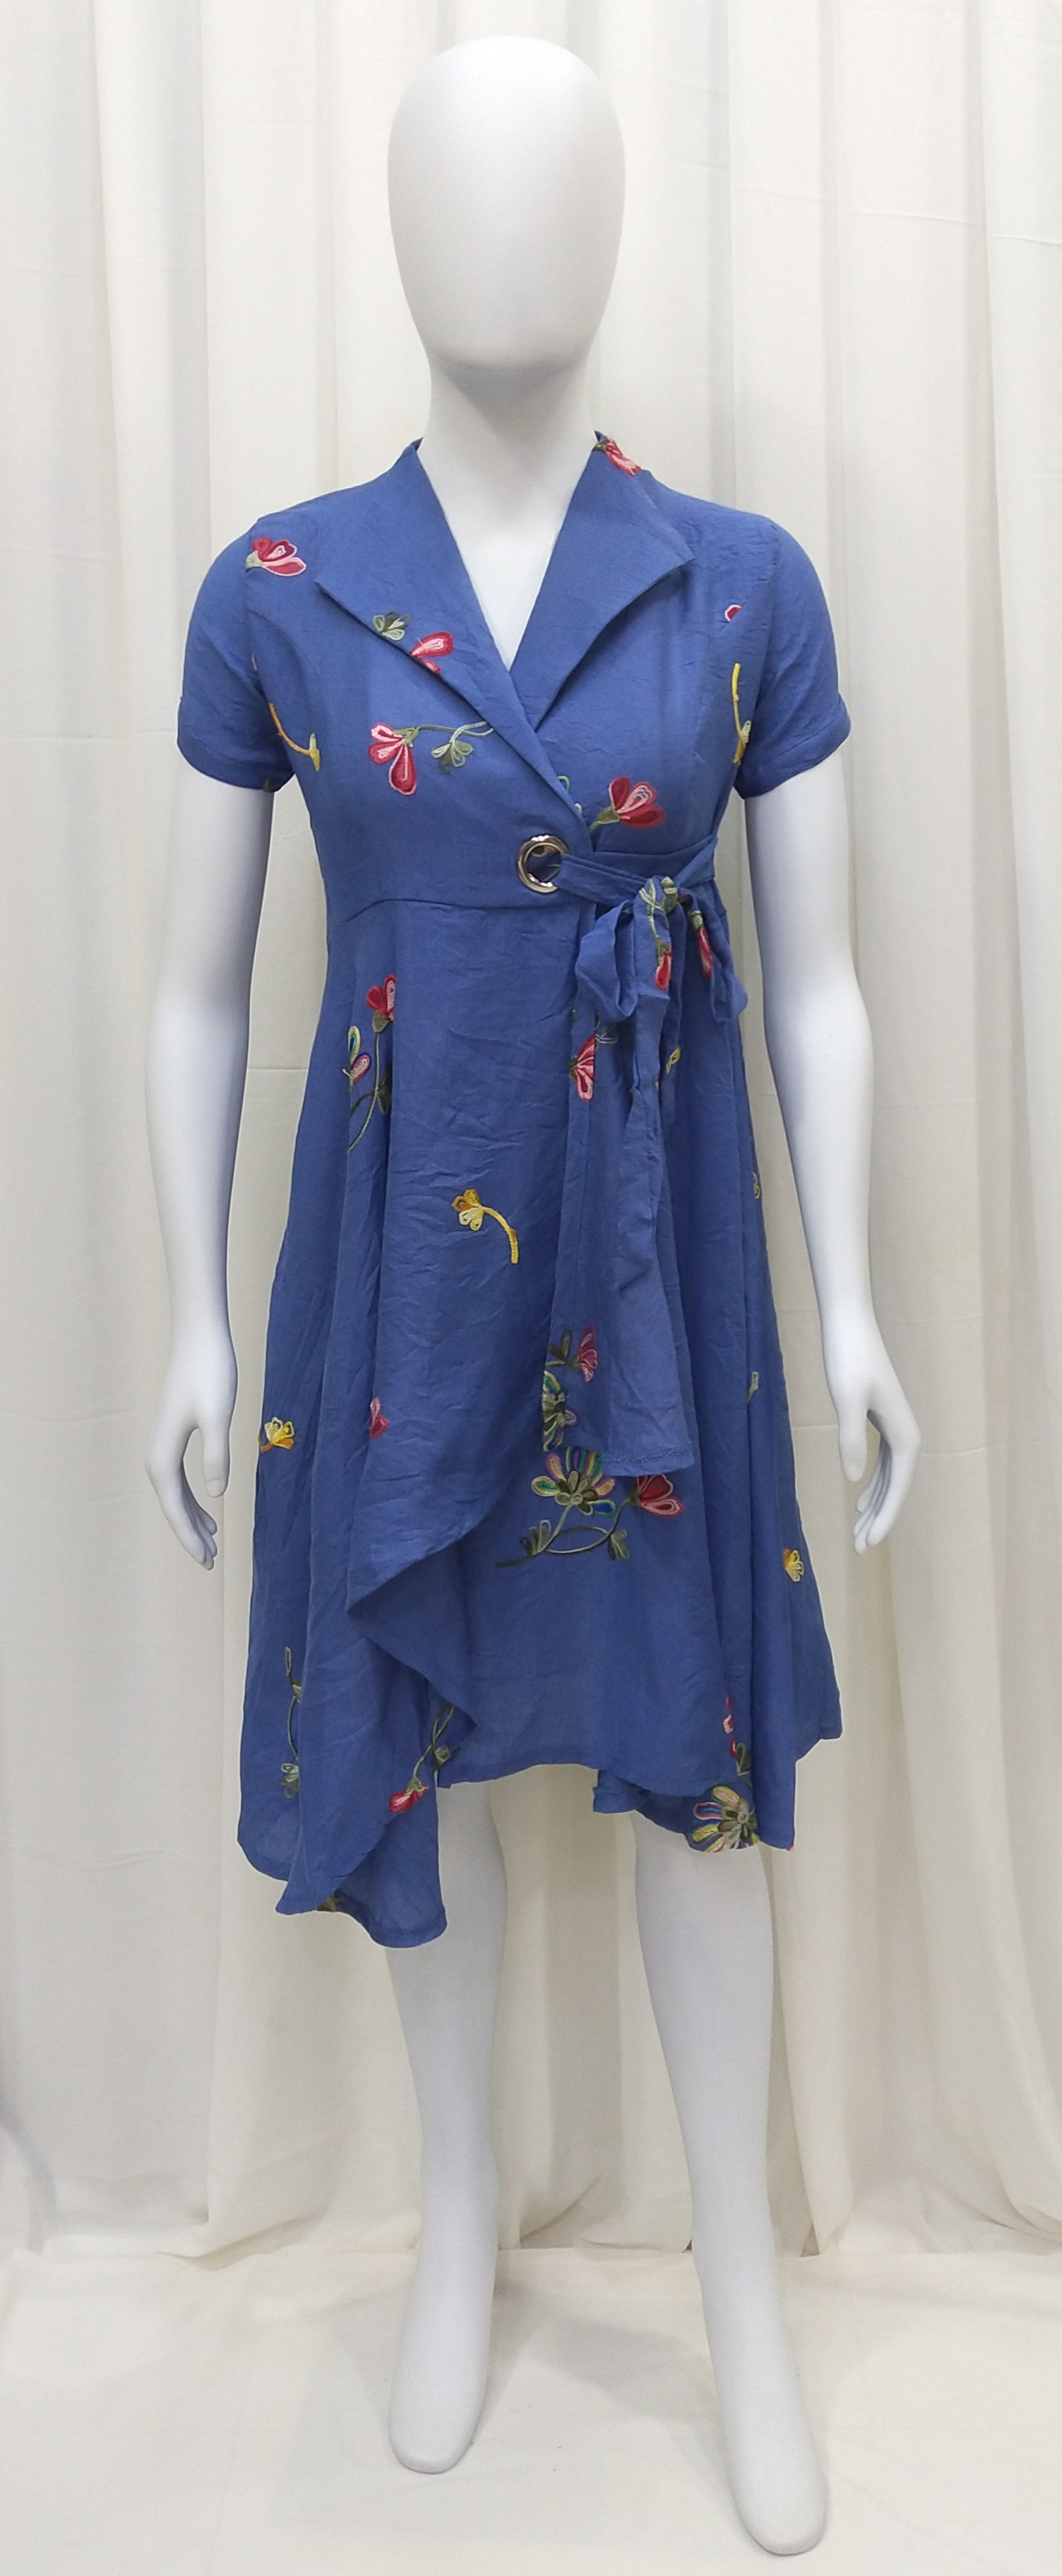 Floral Embroidery Wrap One Piece For Women (L, Blue Melange)